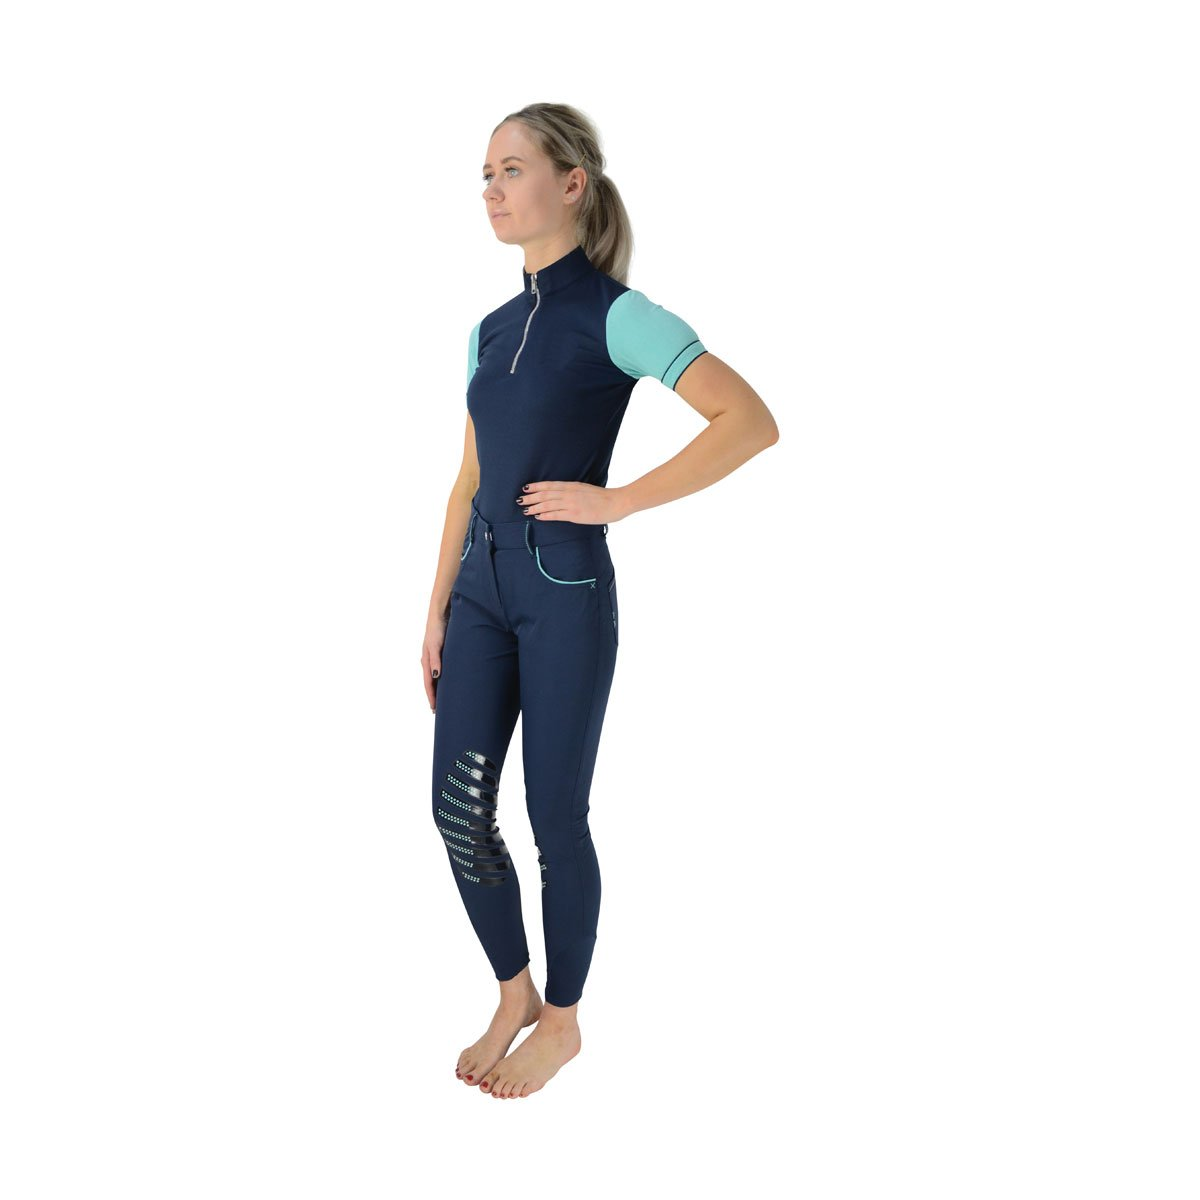 Kids horse riding base layer